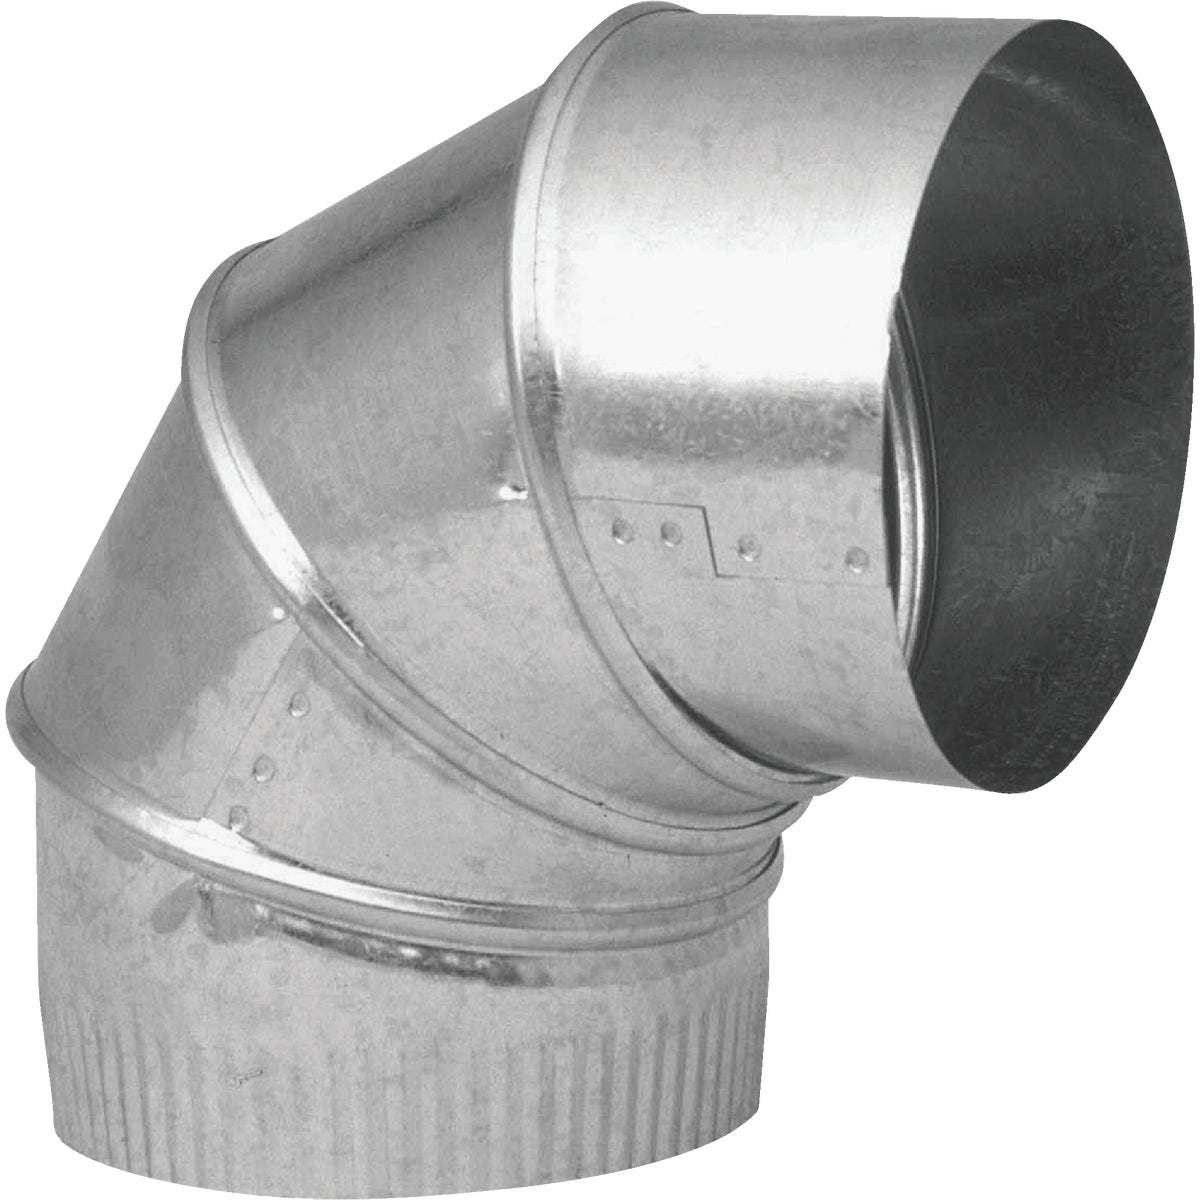 "8"" 28GA GALV ADJ ELBOW - GV0303-C by Imperial Mfg Group"